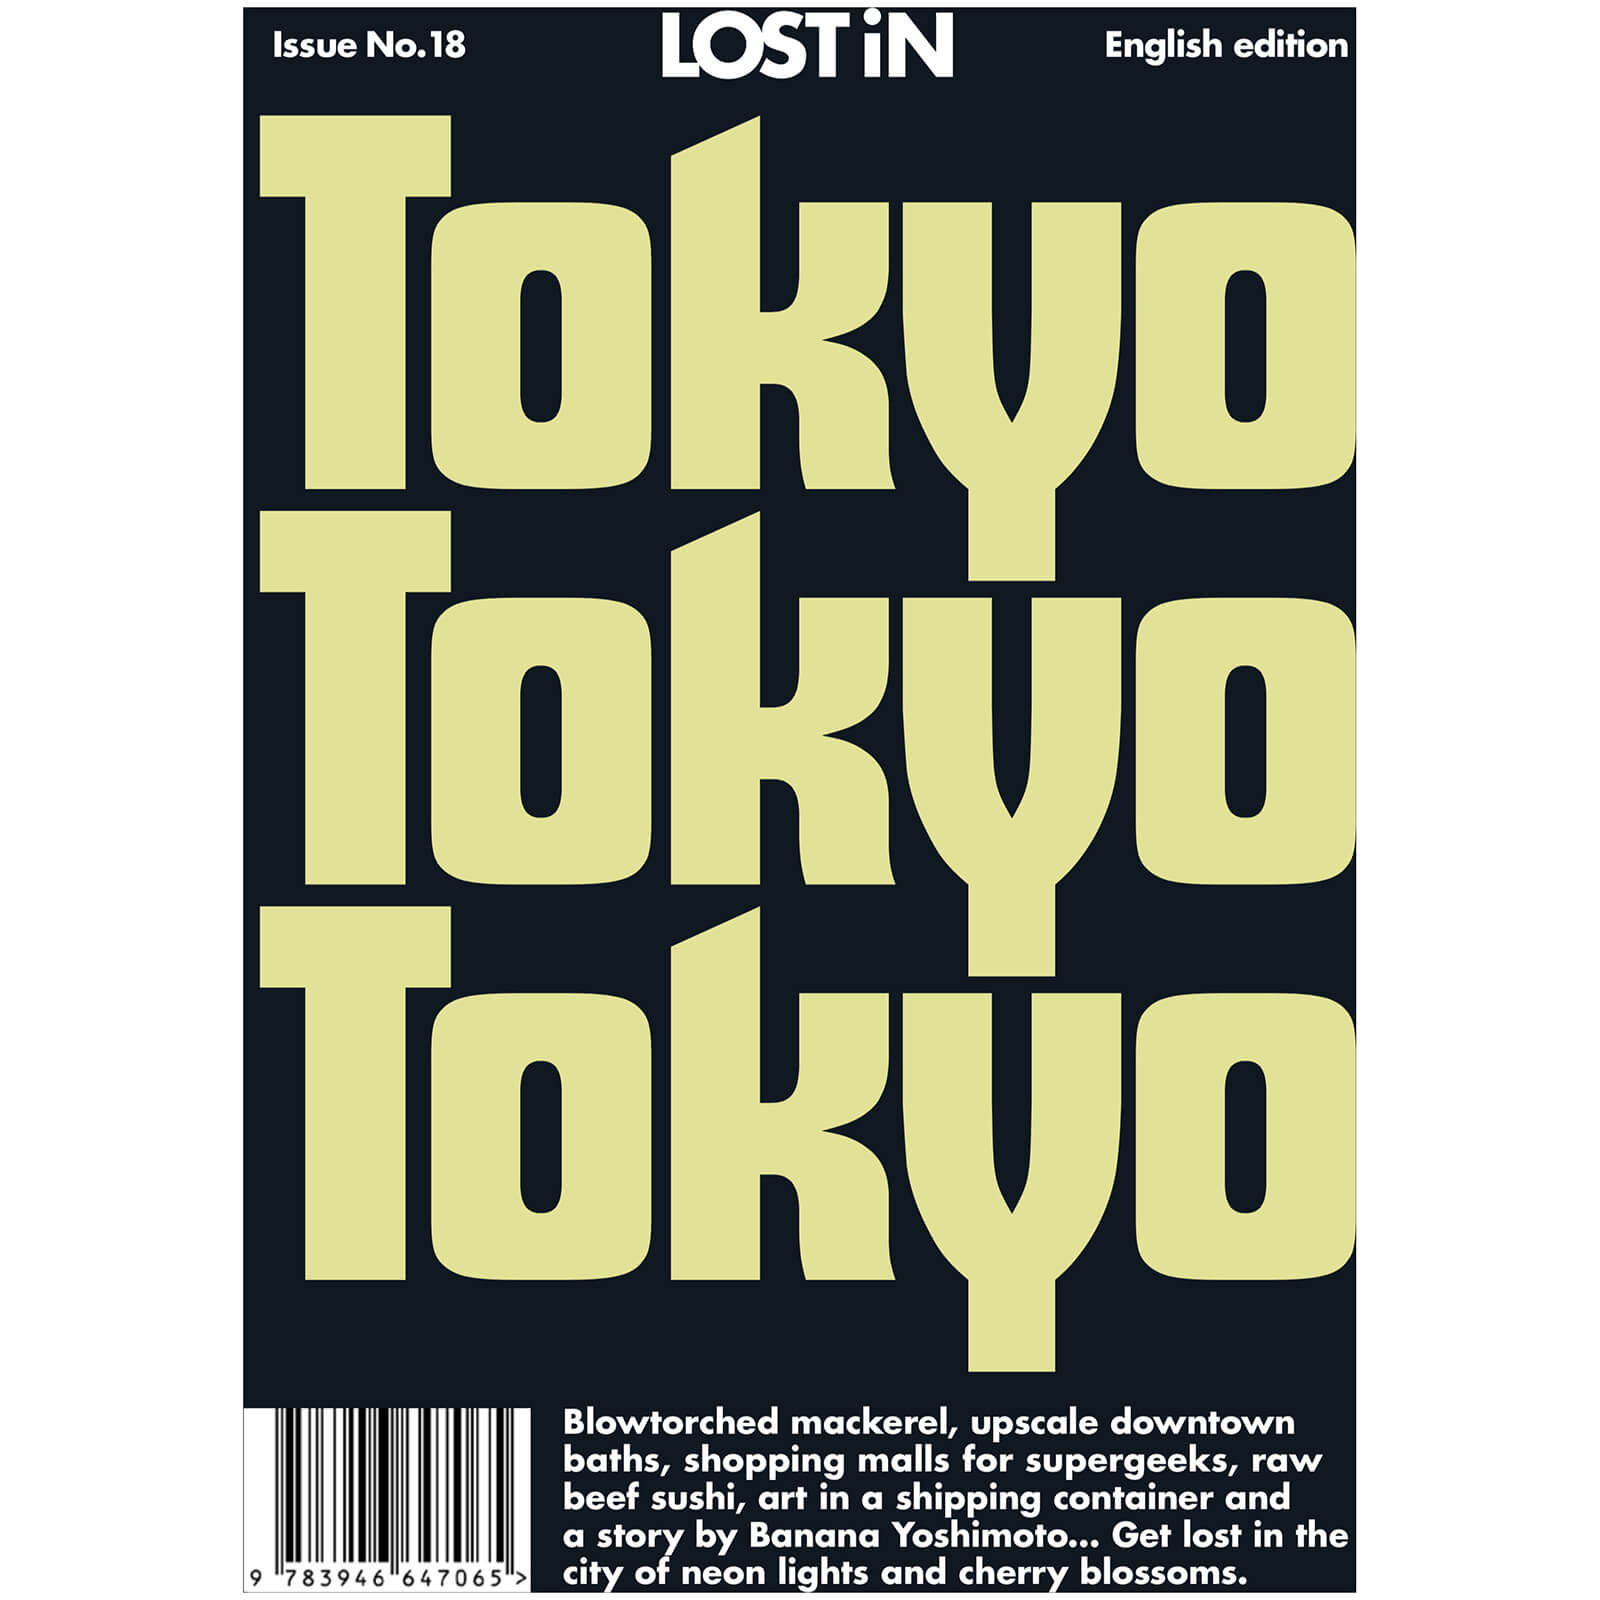 Lost In: Tokyo